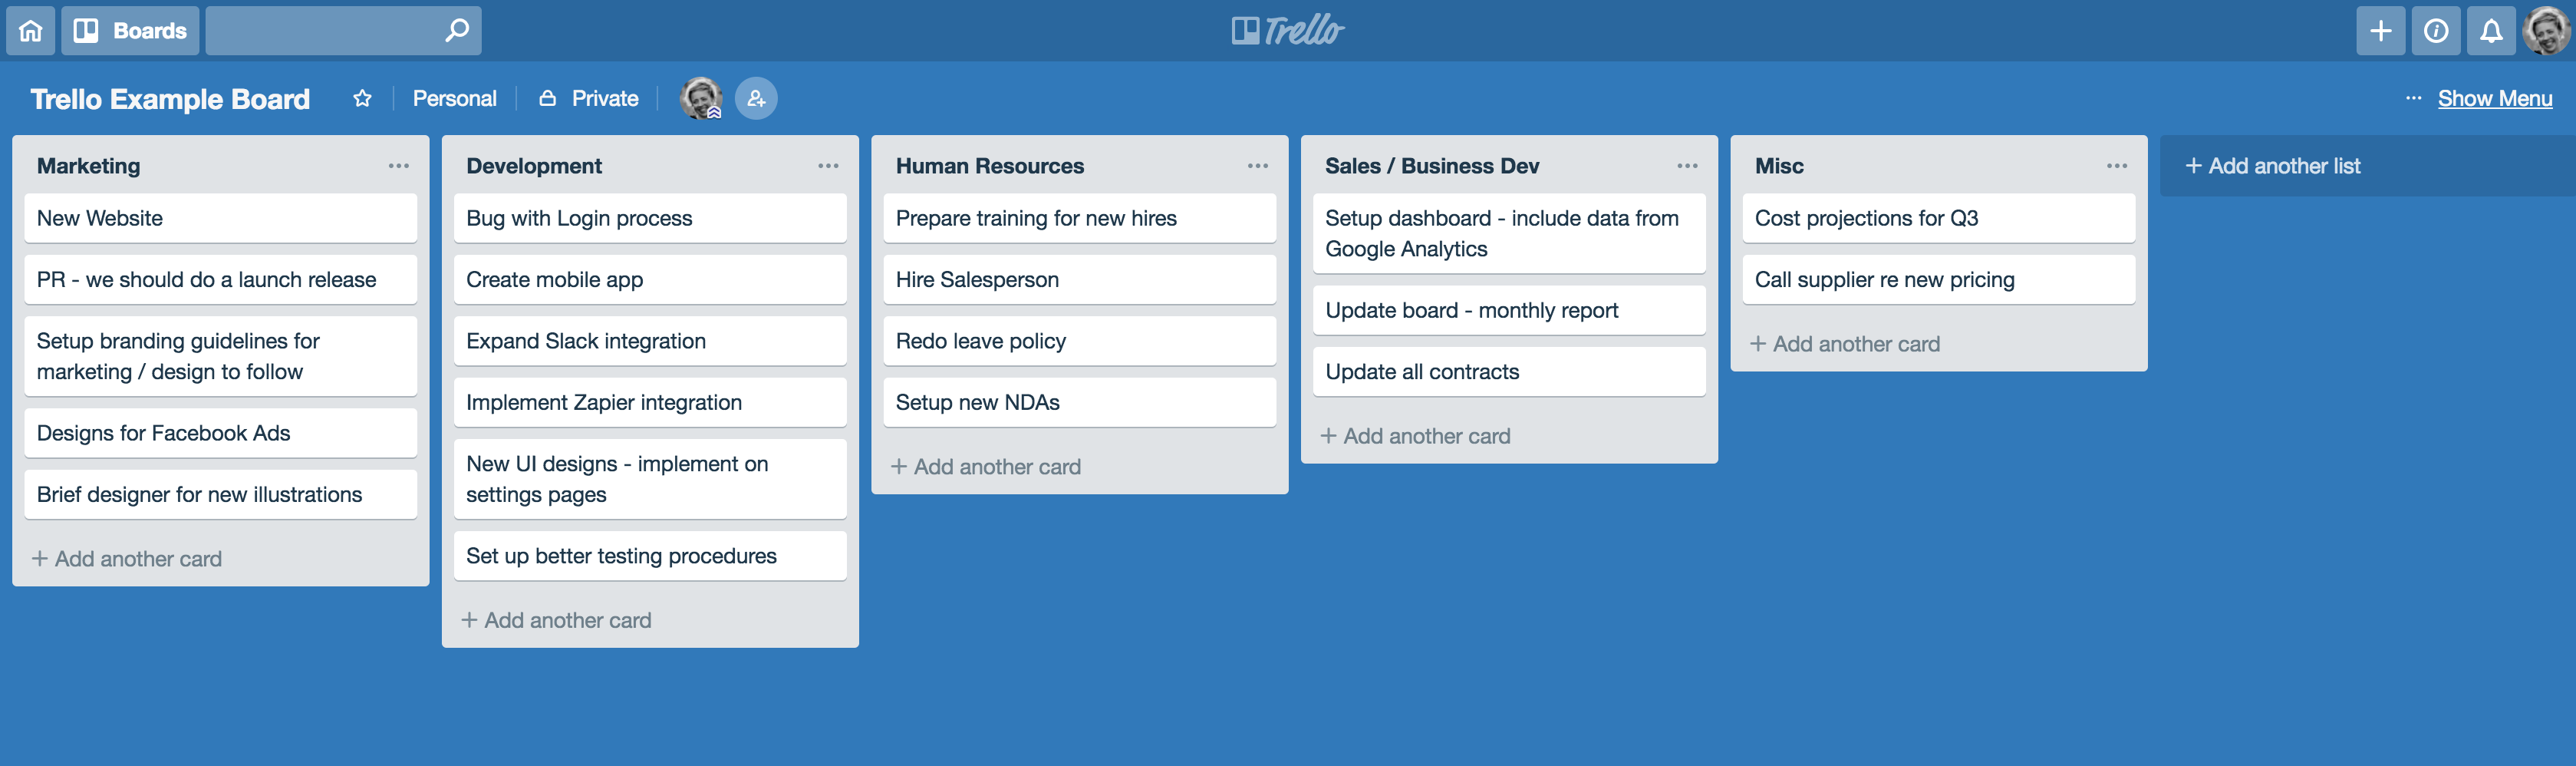 Trello Alternatives Example Board